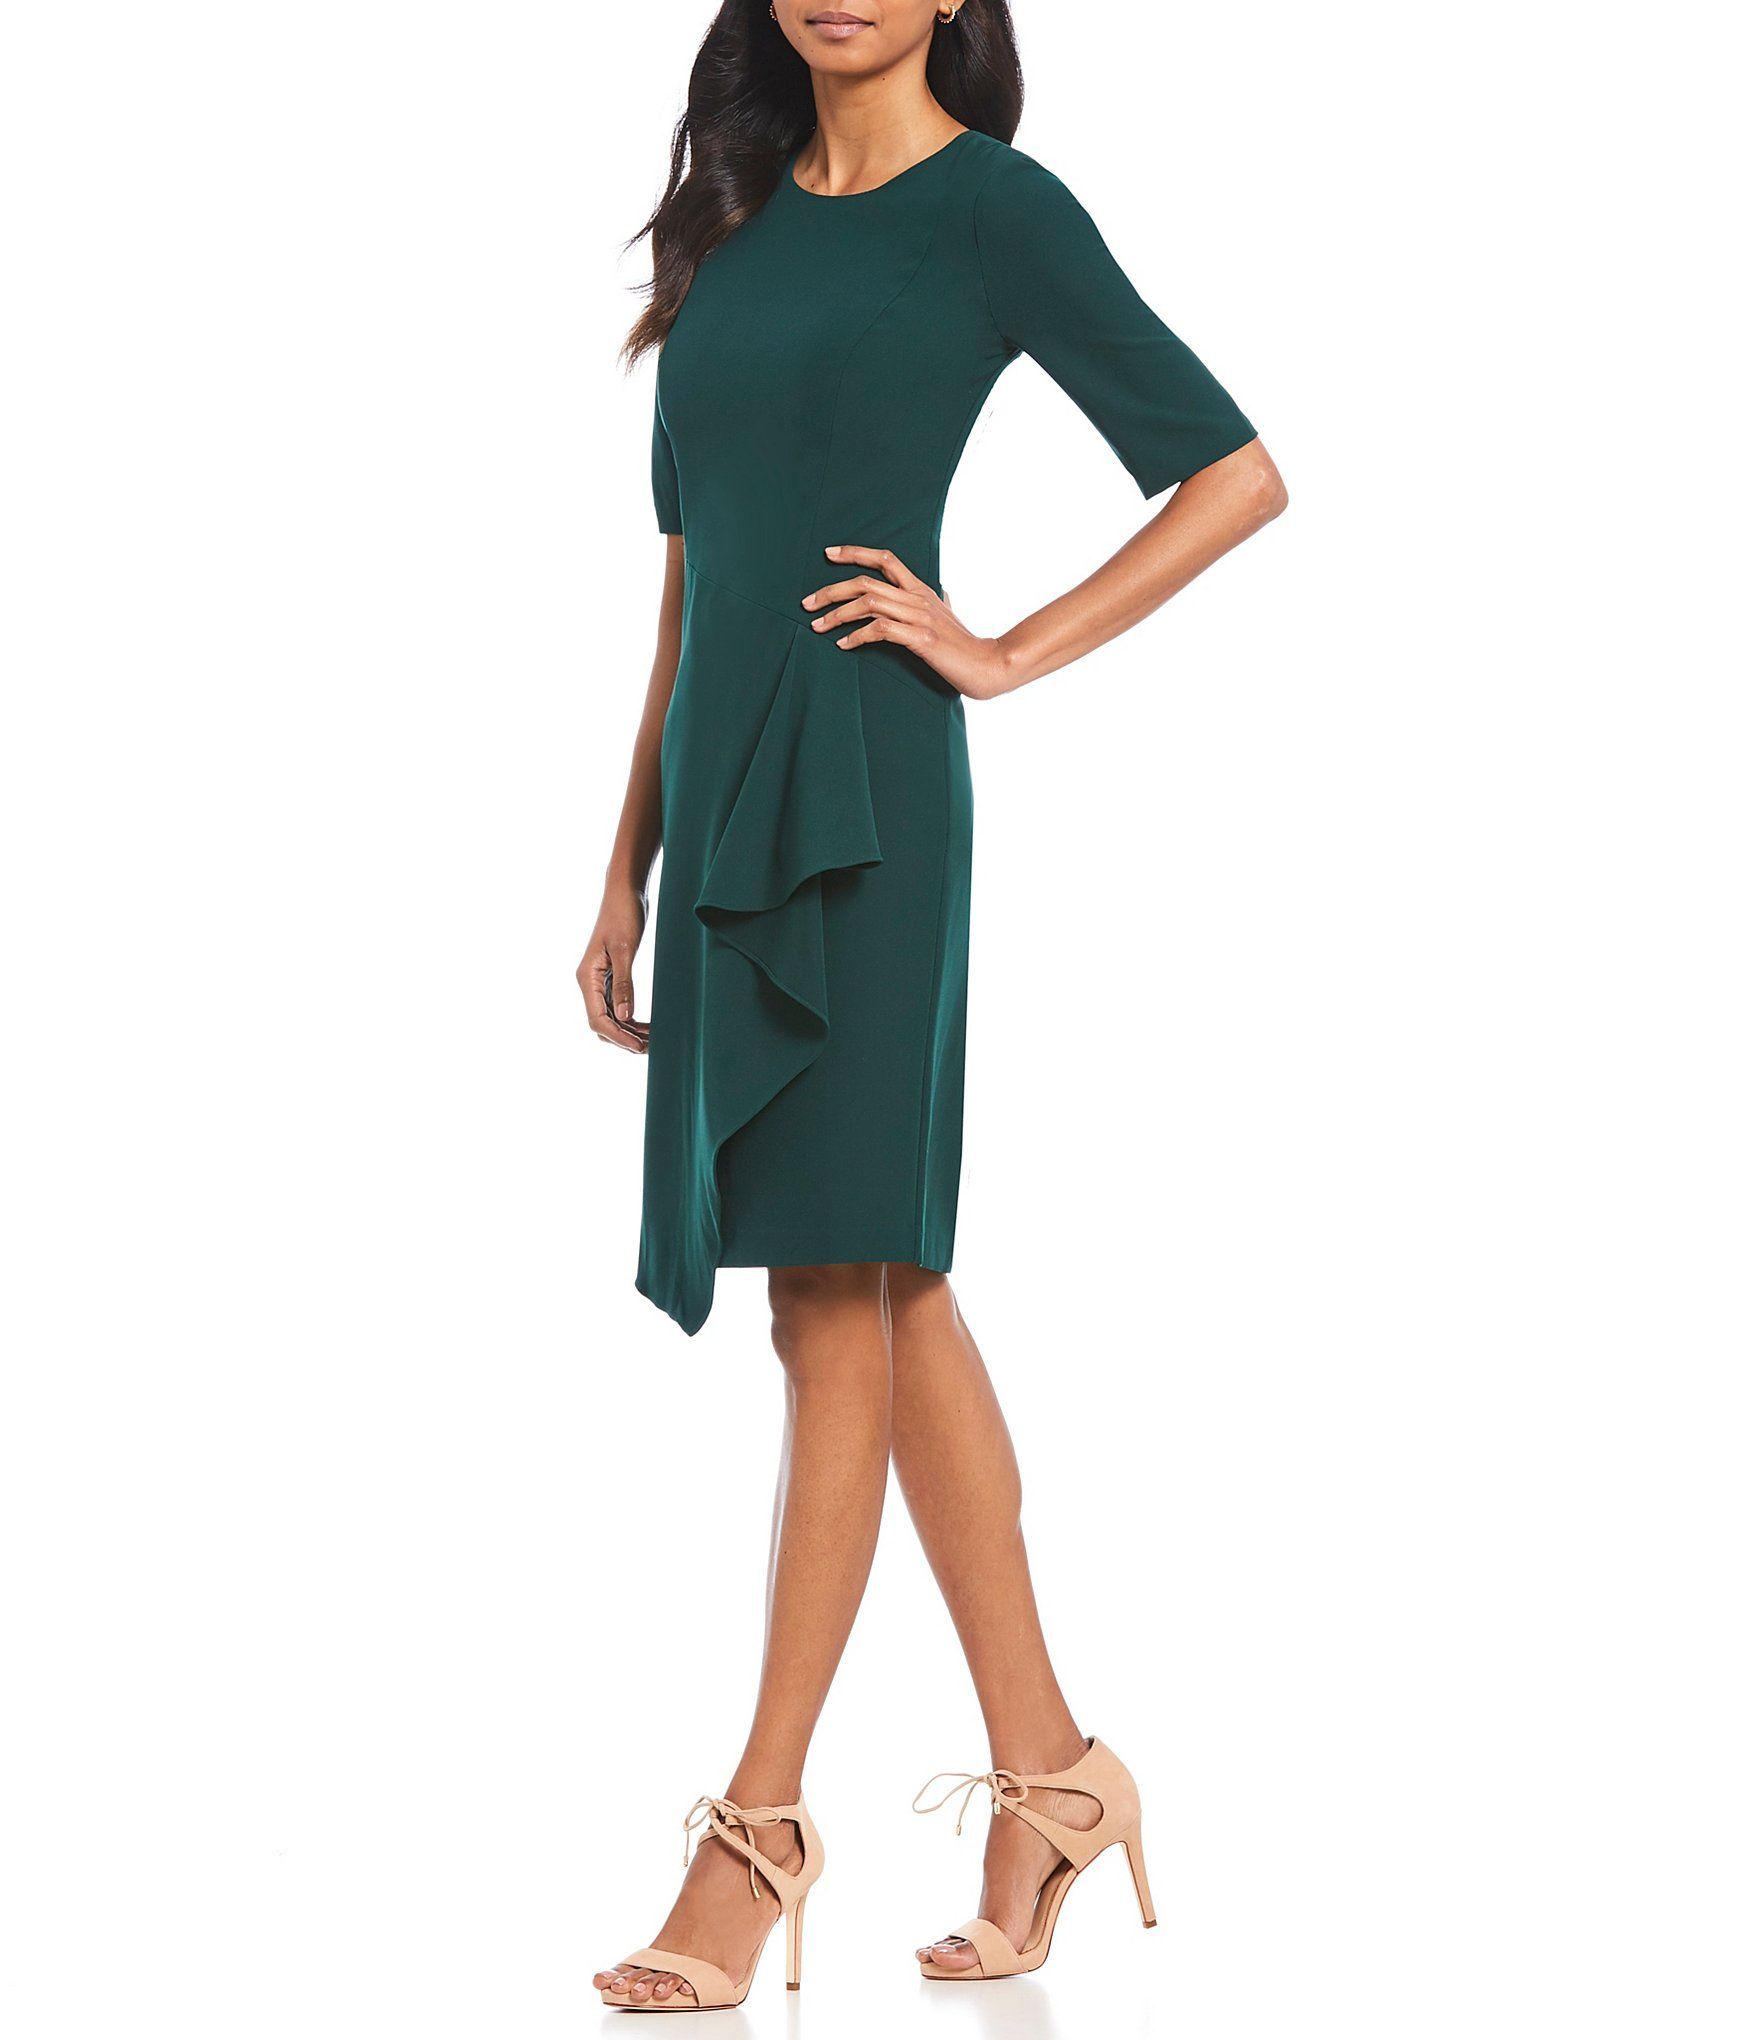 7828656b444 Shop for Maggy London Ruffle front Crepe Sheath Dress at Dillards.com.  Visit Dillards.com to find clothing